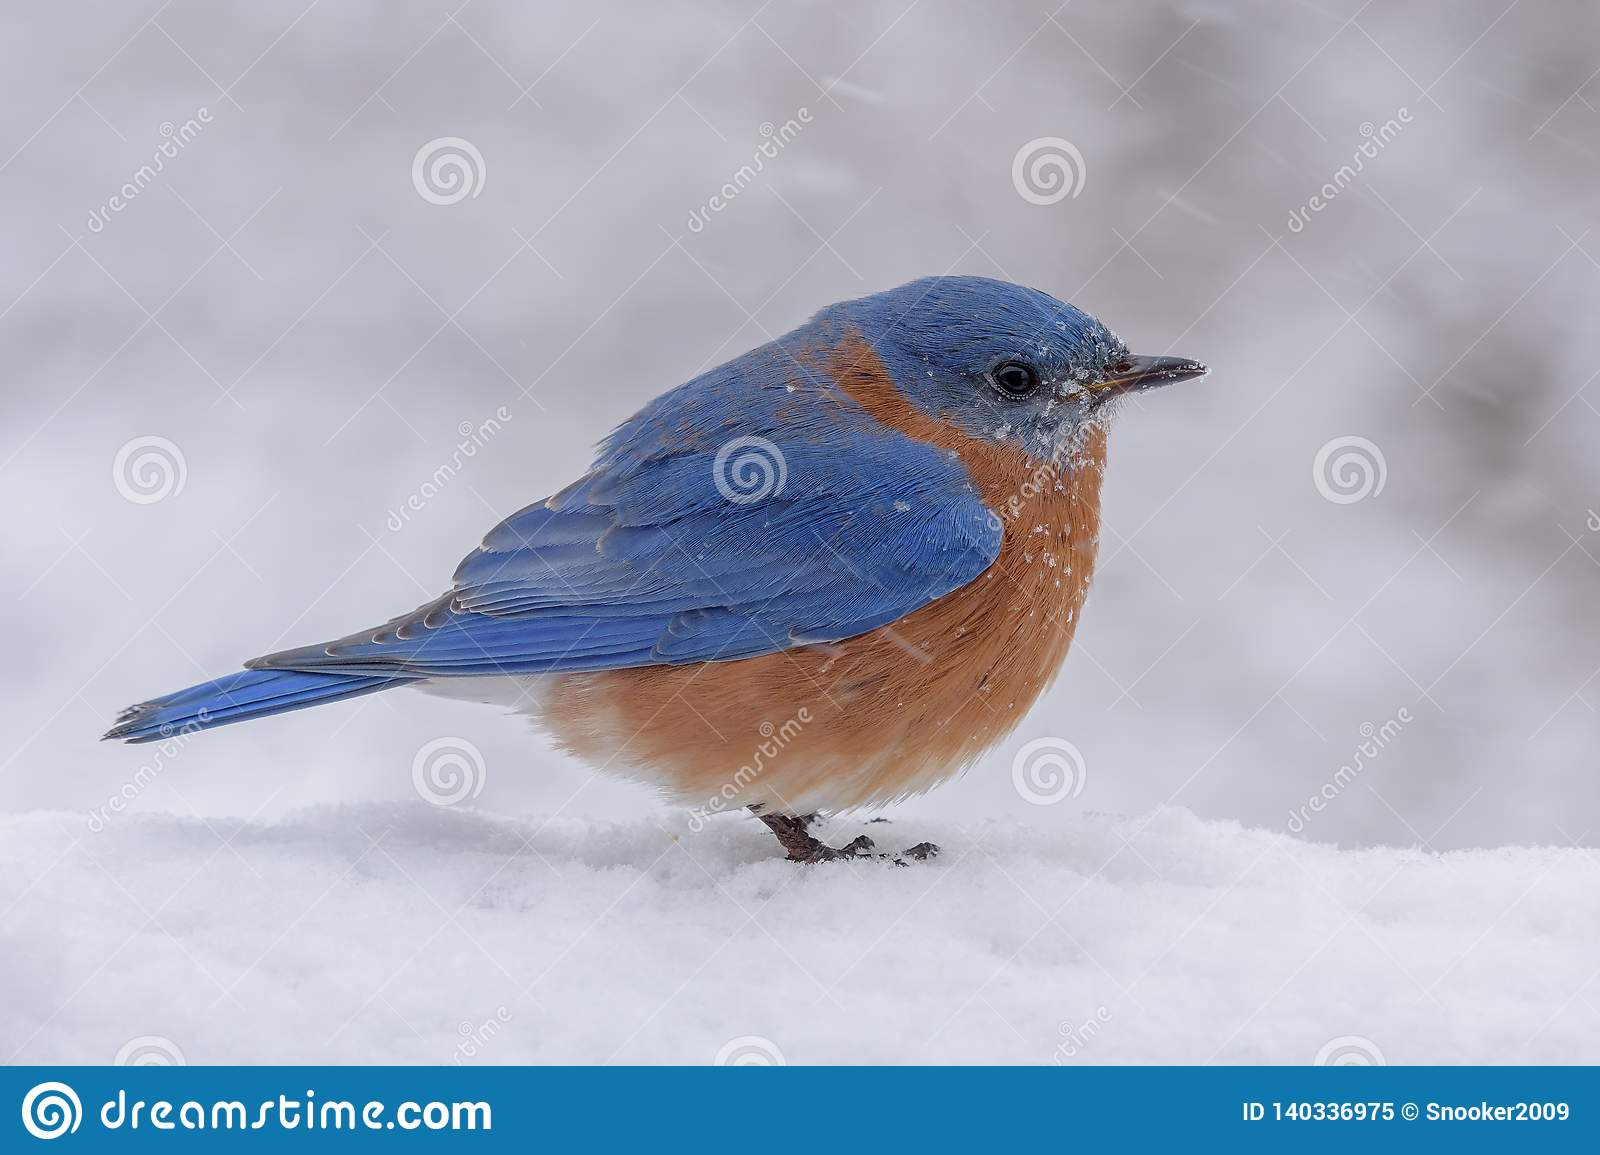 Male Eastern Bluebird in a snow and freezing rain storm